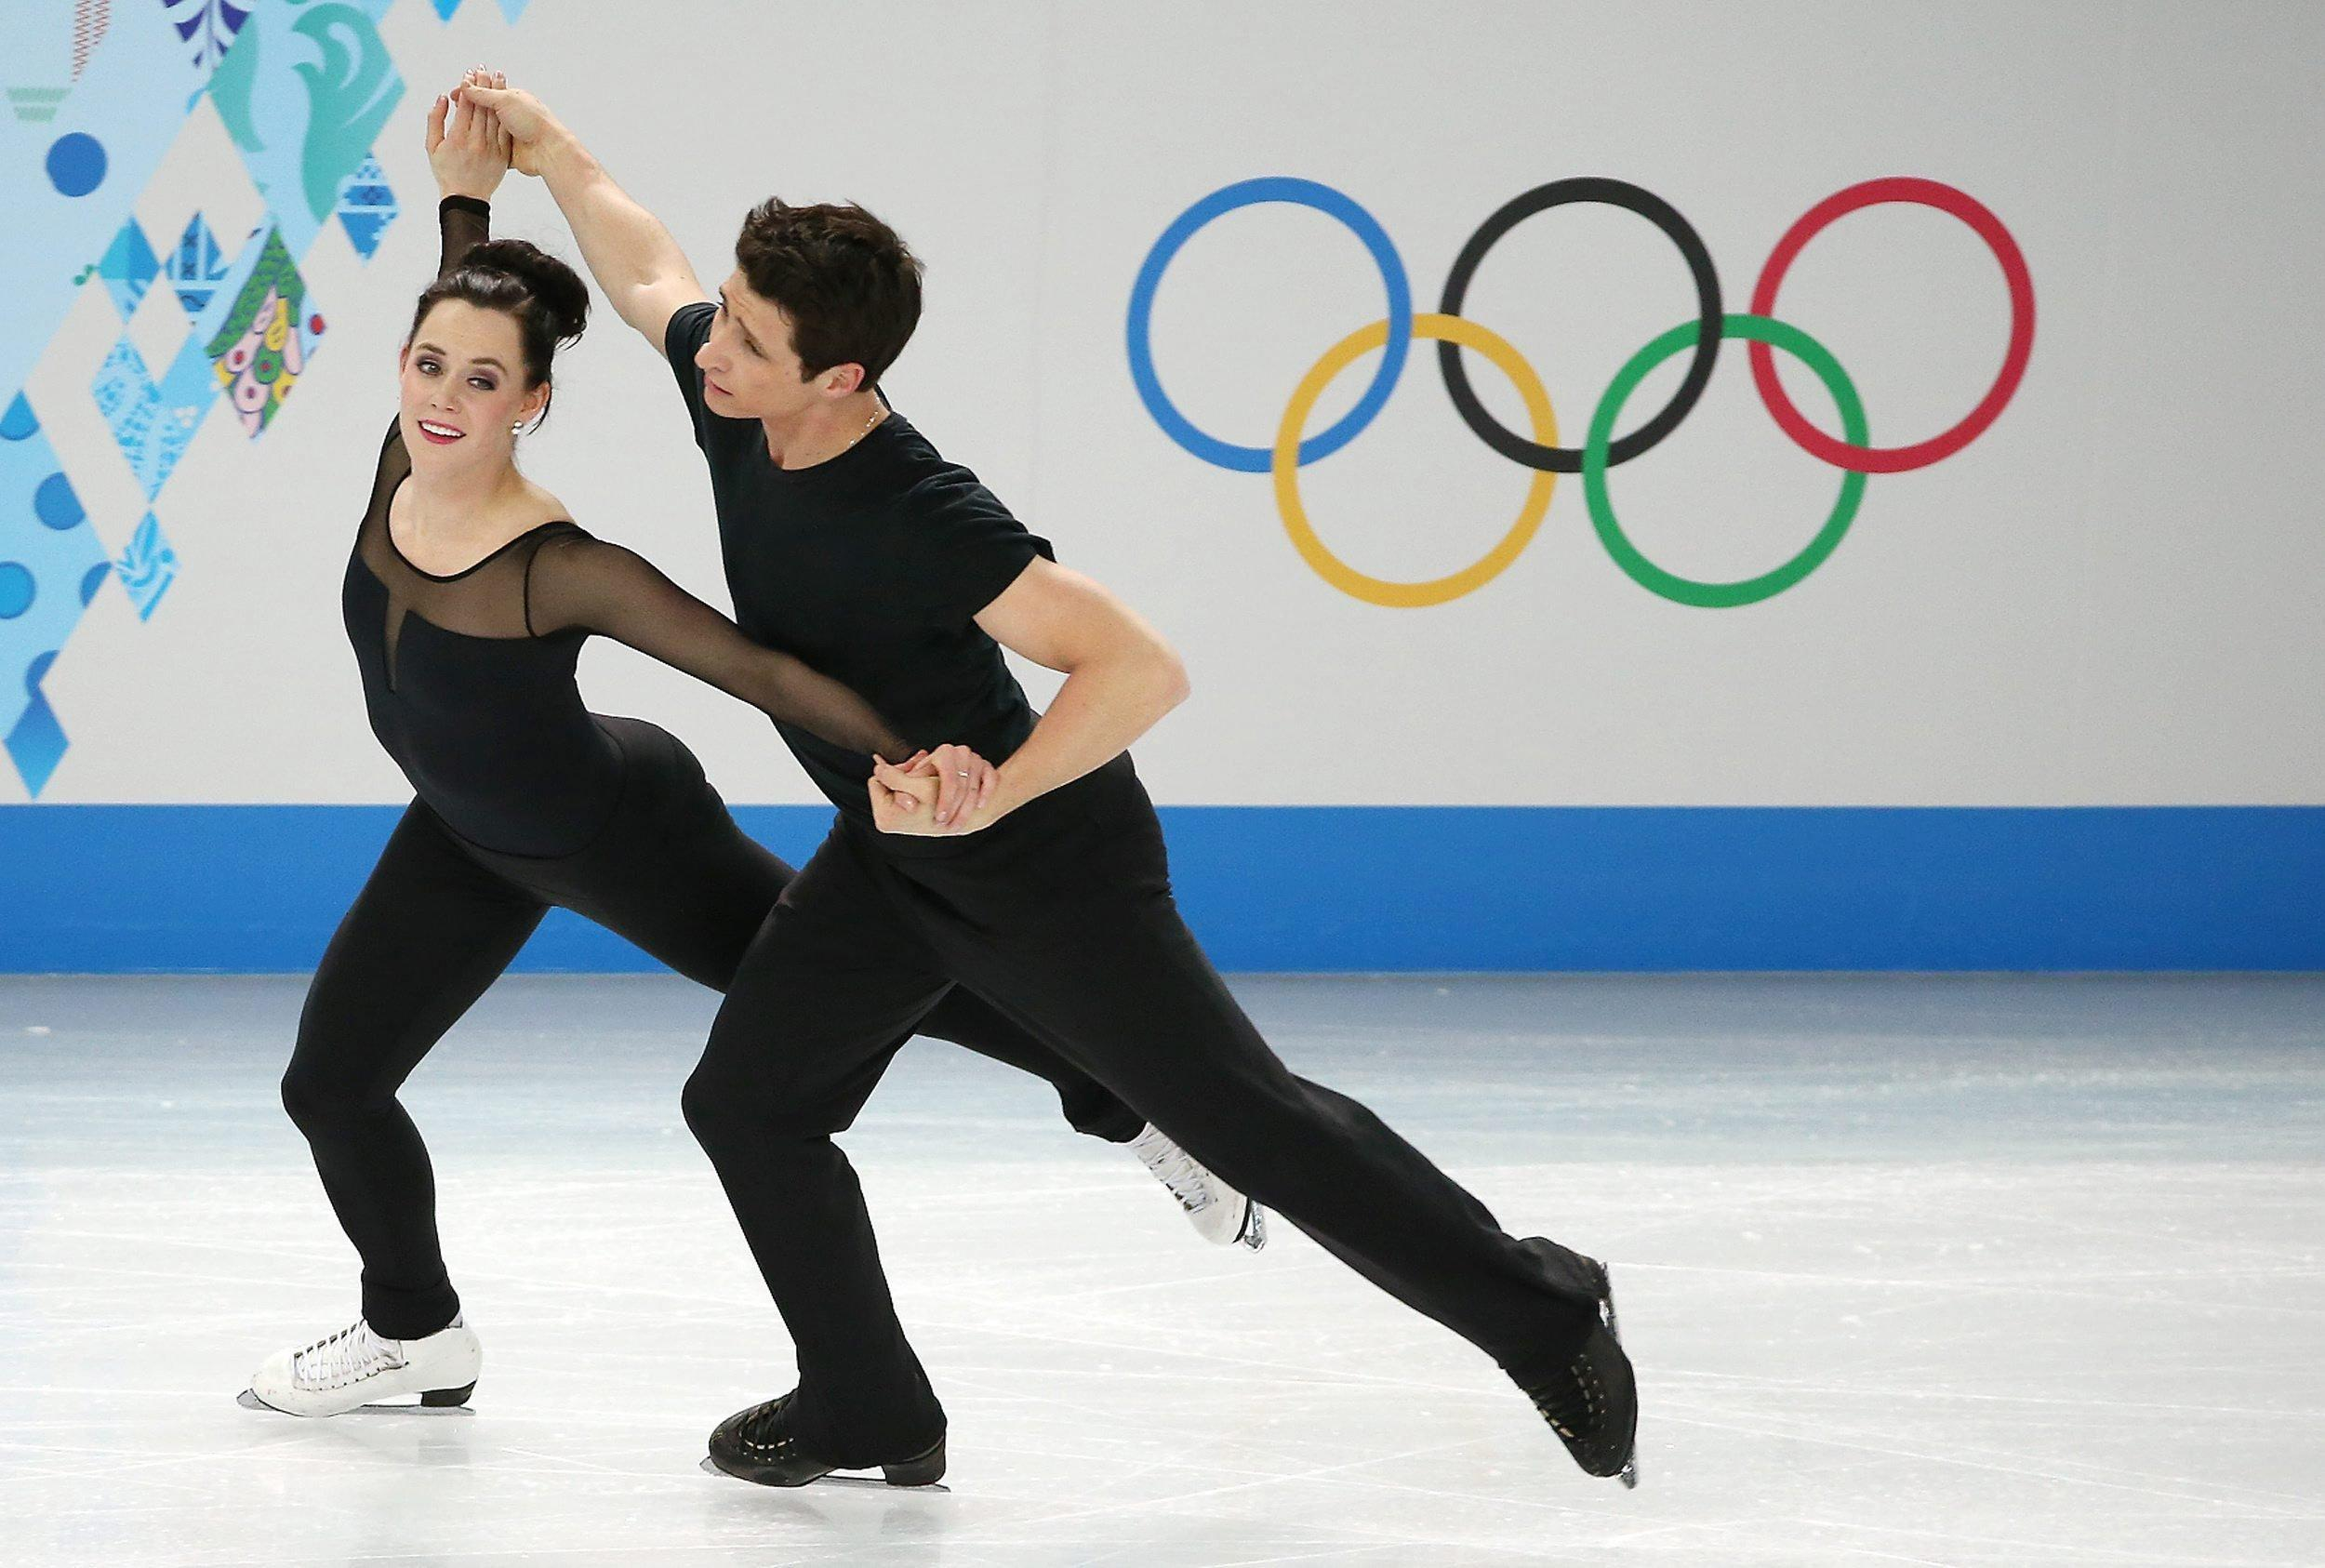 Sochi Olympics Team Figure Skating: What You Need to Know